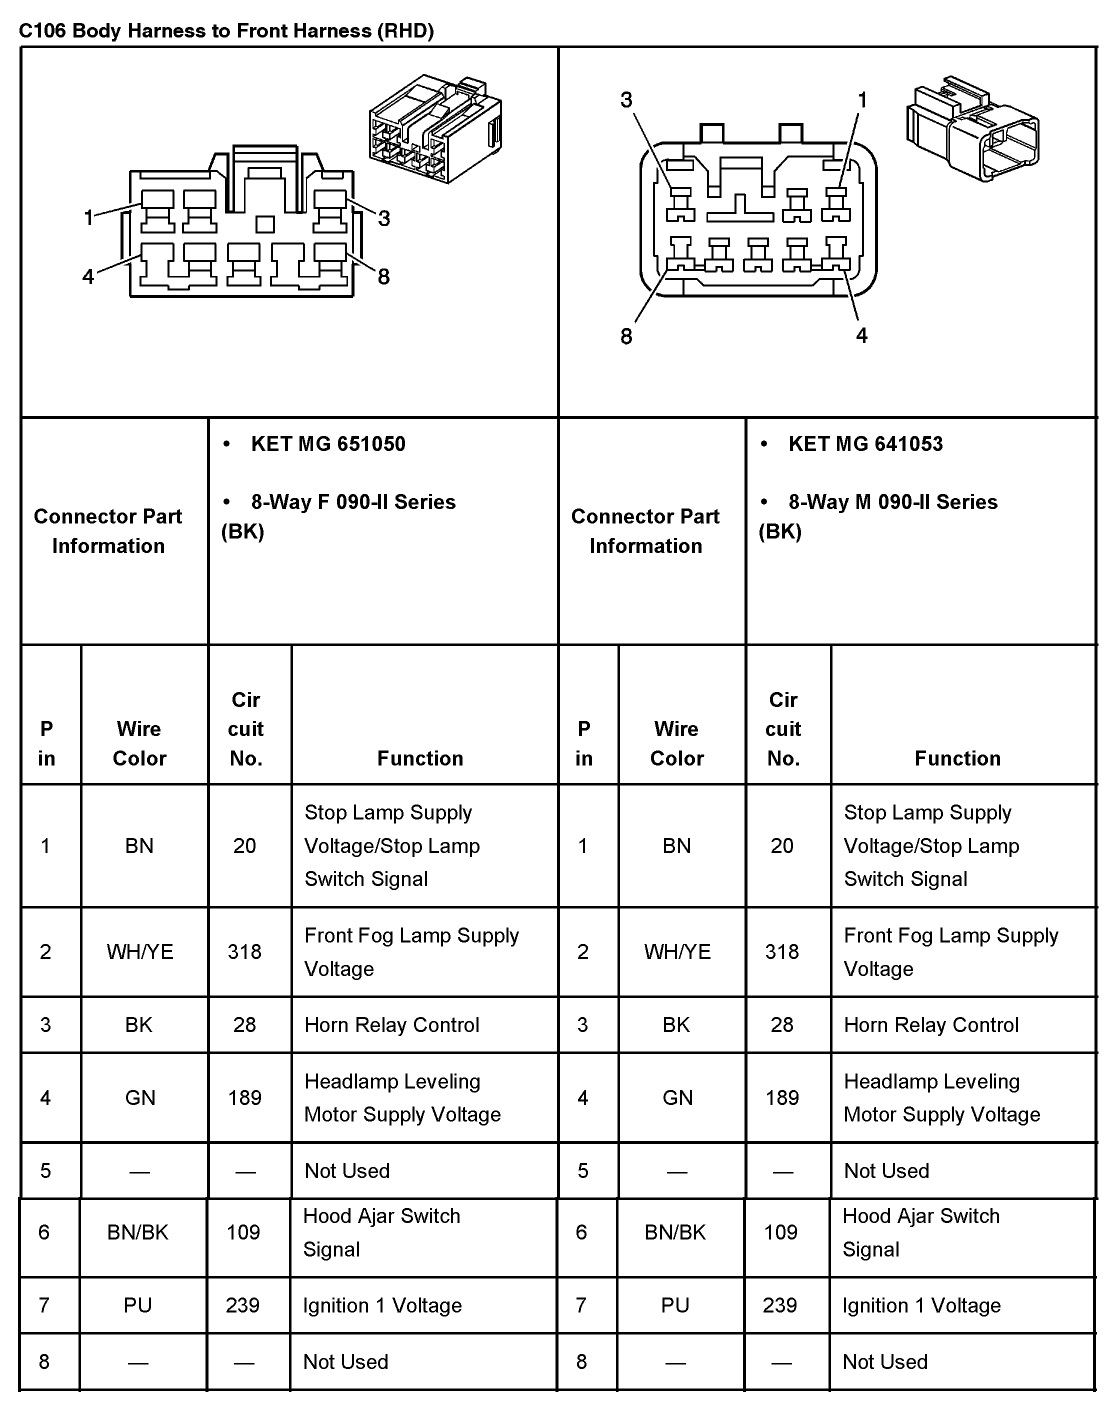 2005 Chevy Aveo Wire Diagram Wiring Schematics 2006 Trailblazer Radio Master Connector List And Diagrams Problems